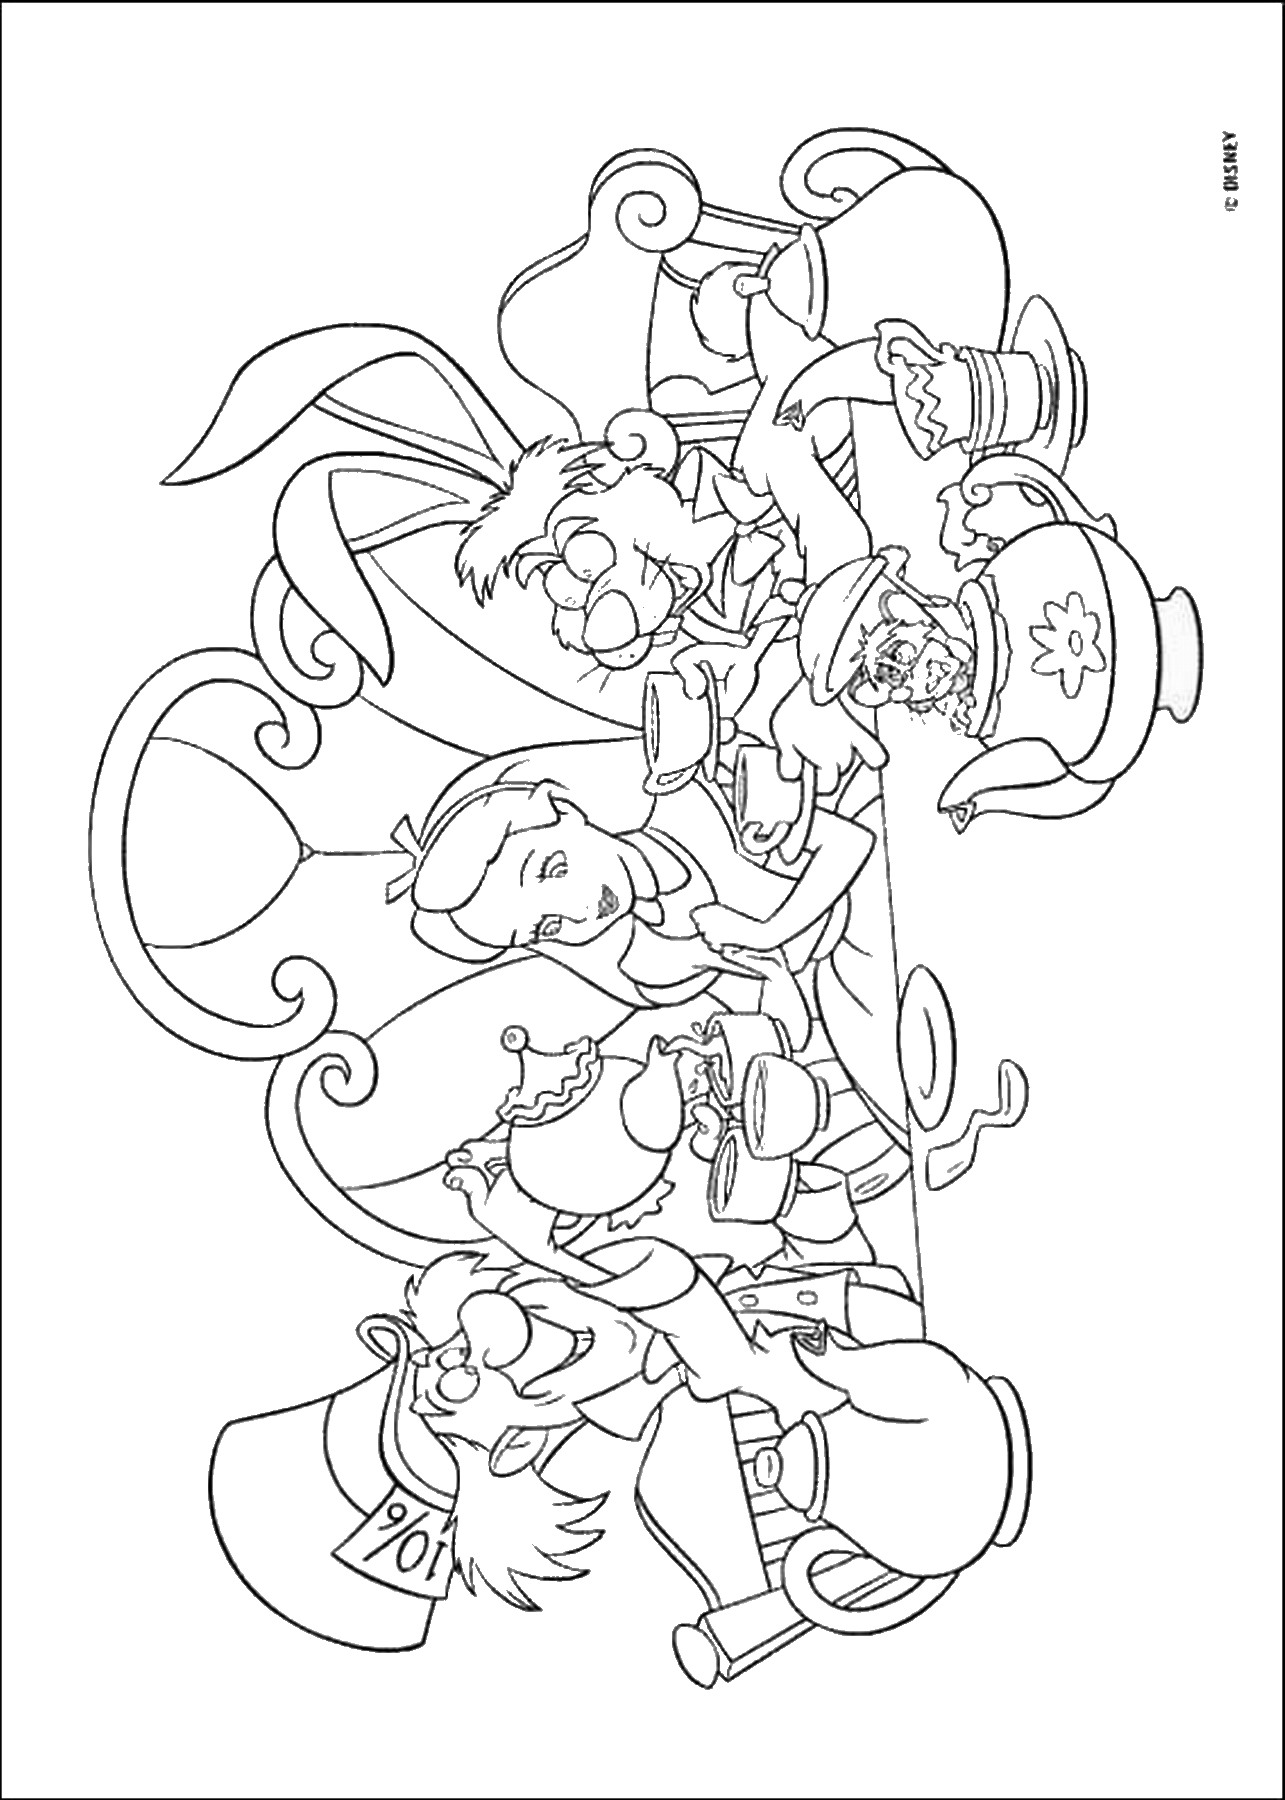 alice in wonderland coloring pages alice in wonderland coloring pages in coloring pages wonderland alice